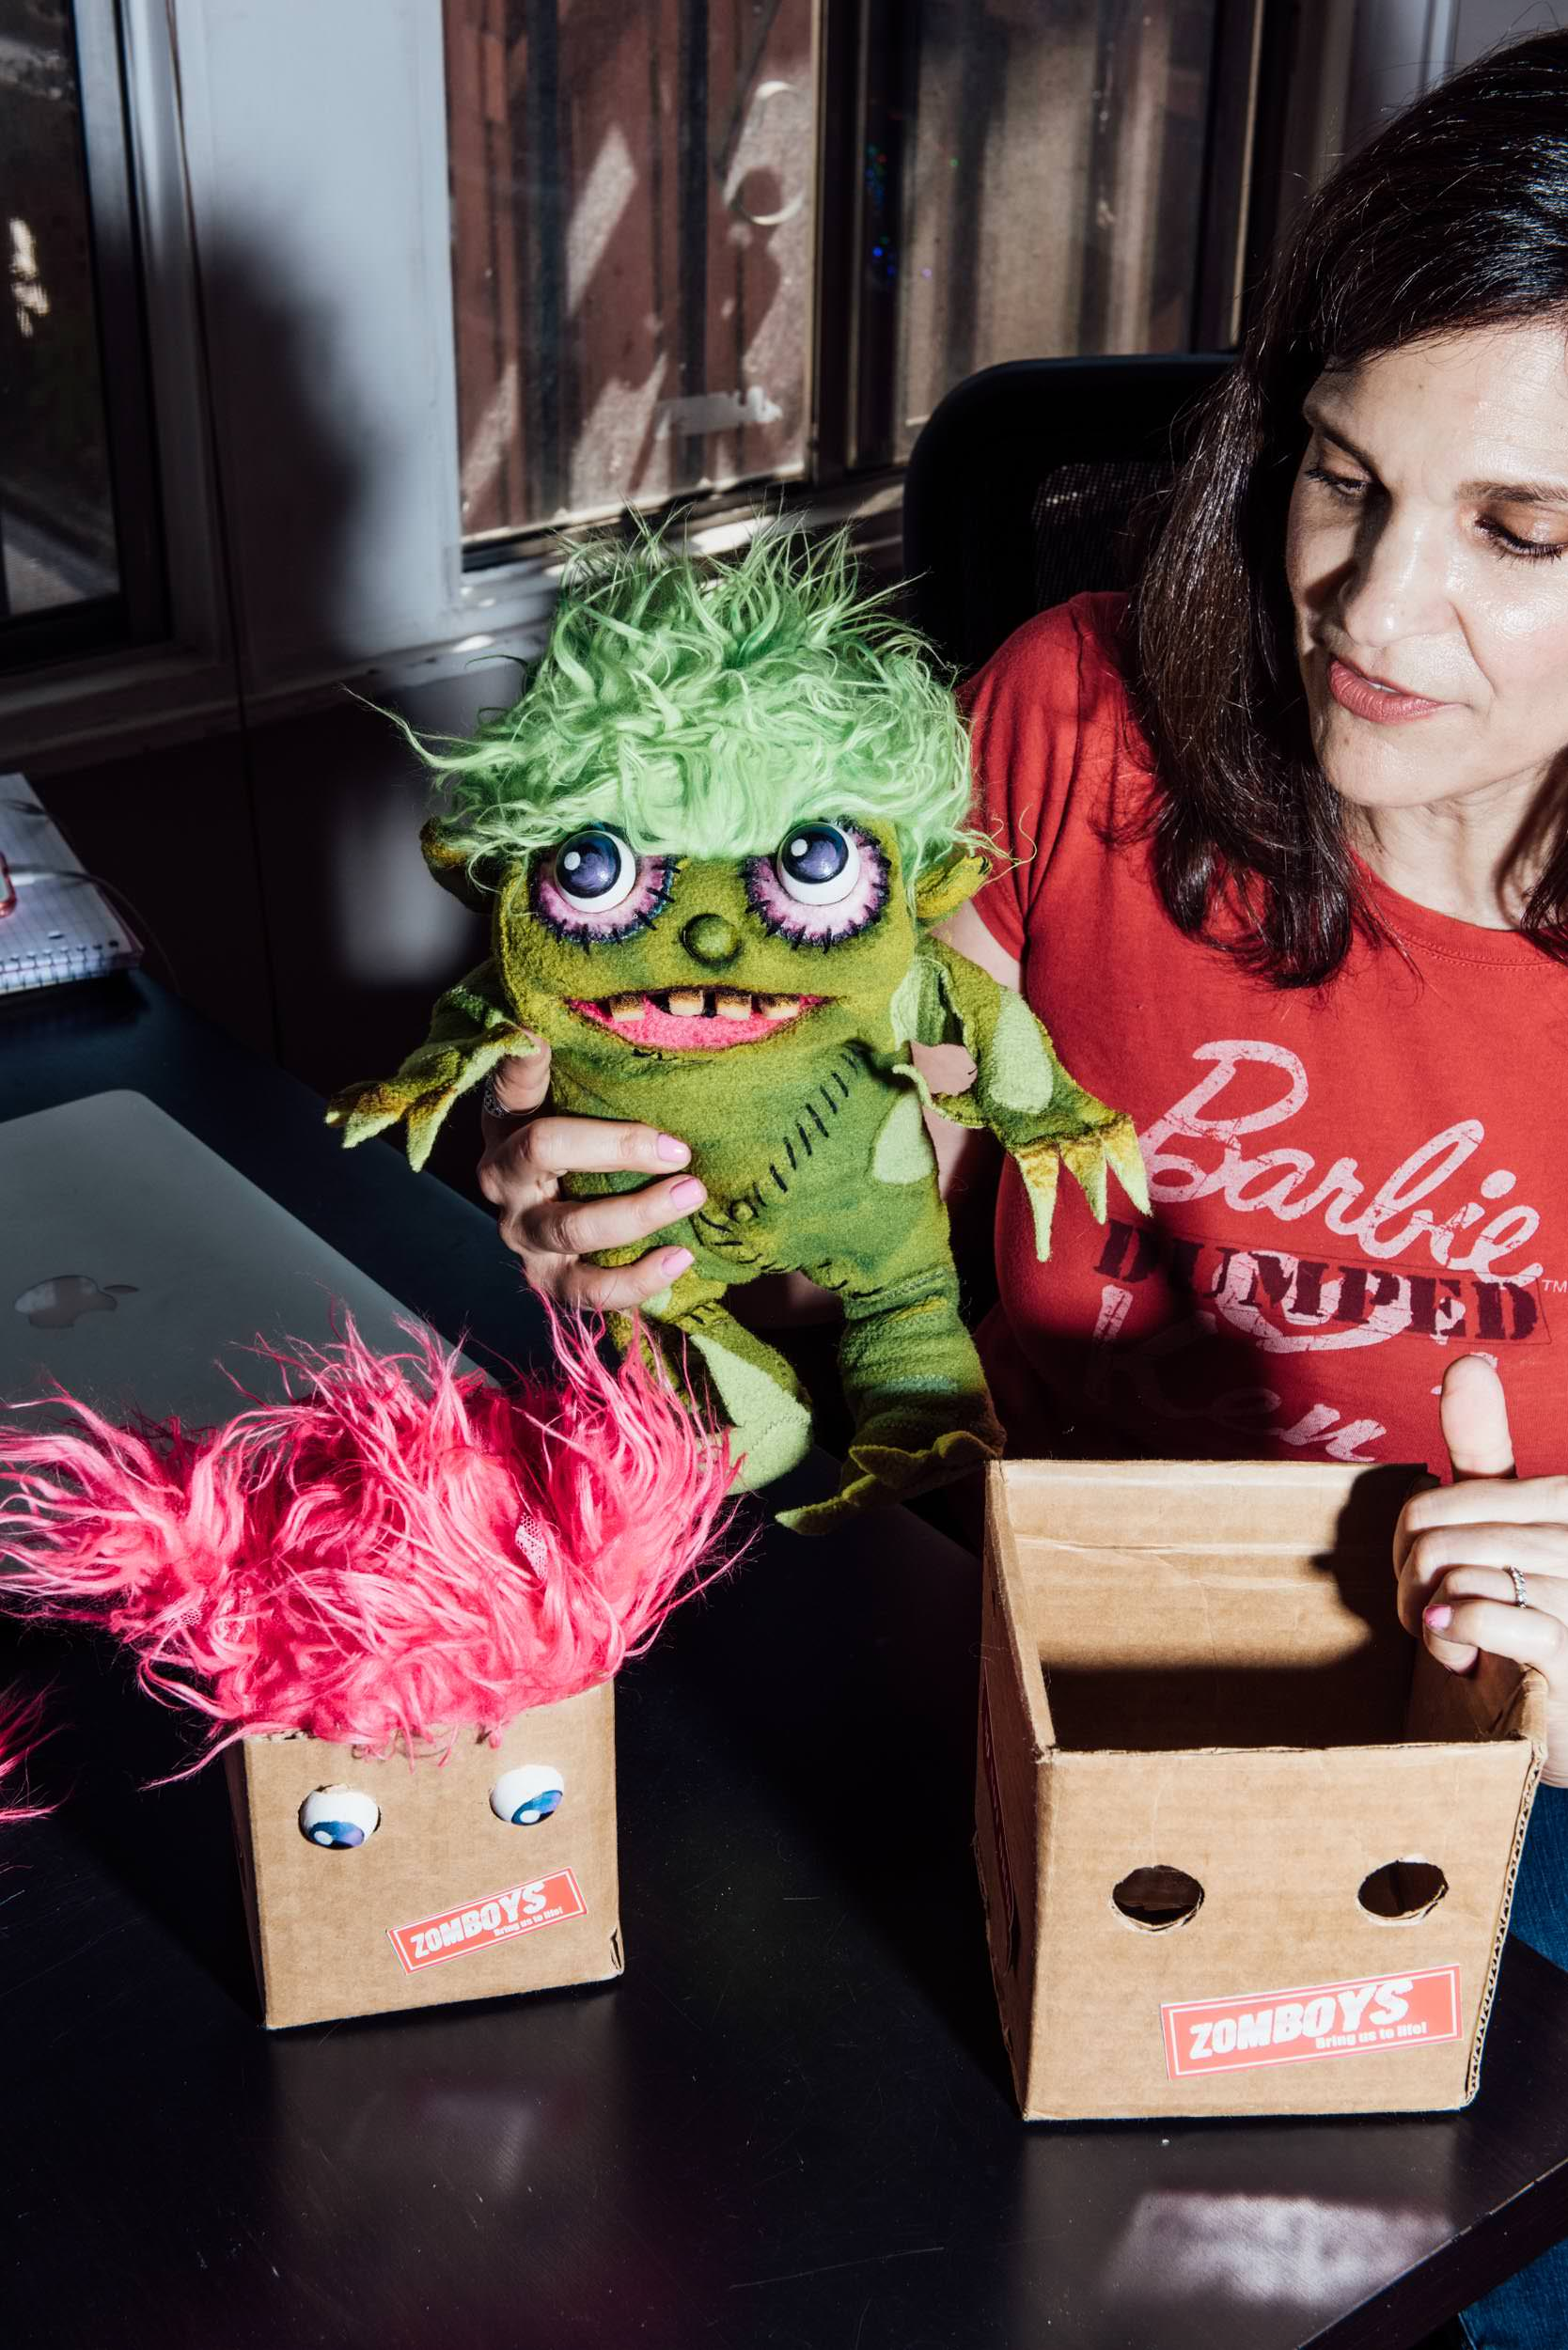 Big Toy Makers Clash With the Inventors They Depend On